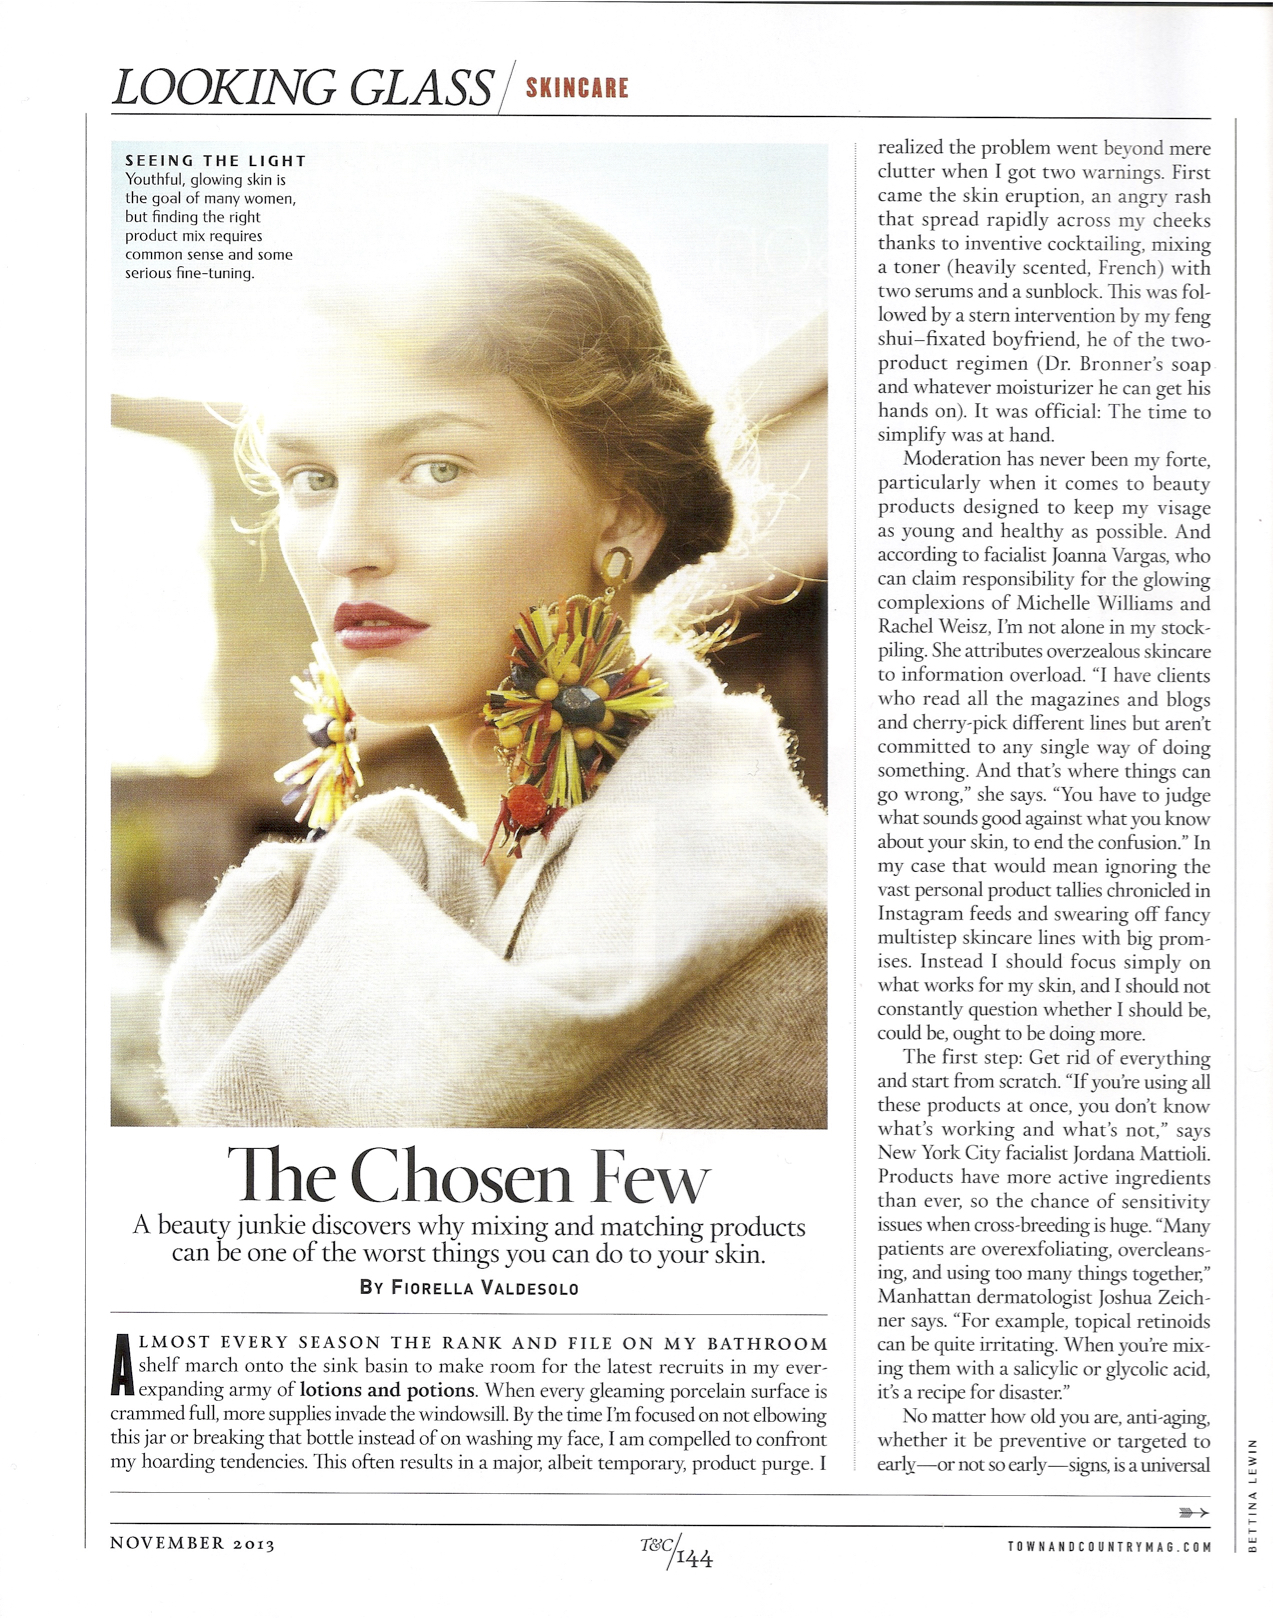 Town & Country- The Chosen Few November 2013 pg 1.jpg